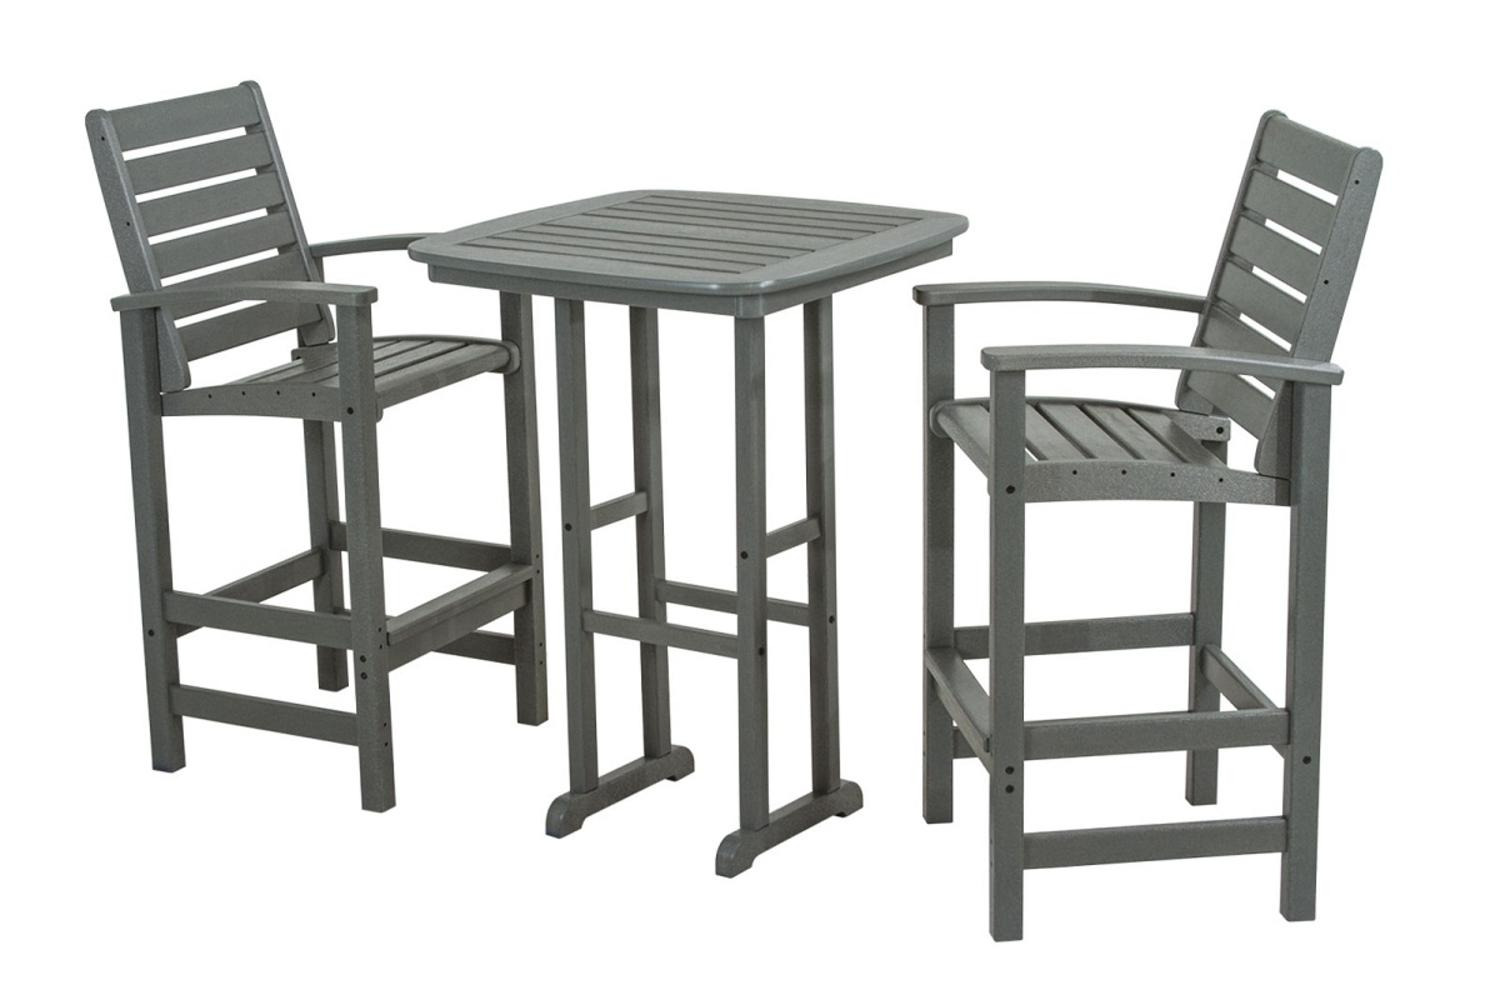 Outdoor Recycled Earth-Friendly 3-Piece Patio Dining Room Set Slate Gray by Eco-Friendly Furnishings